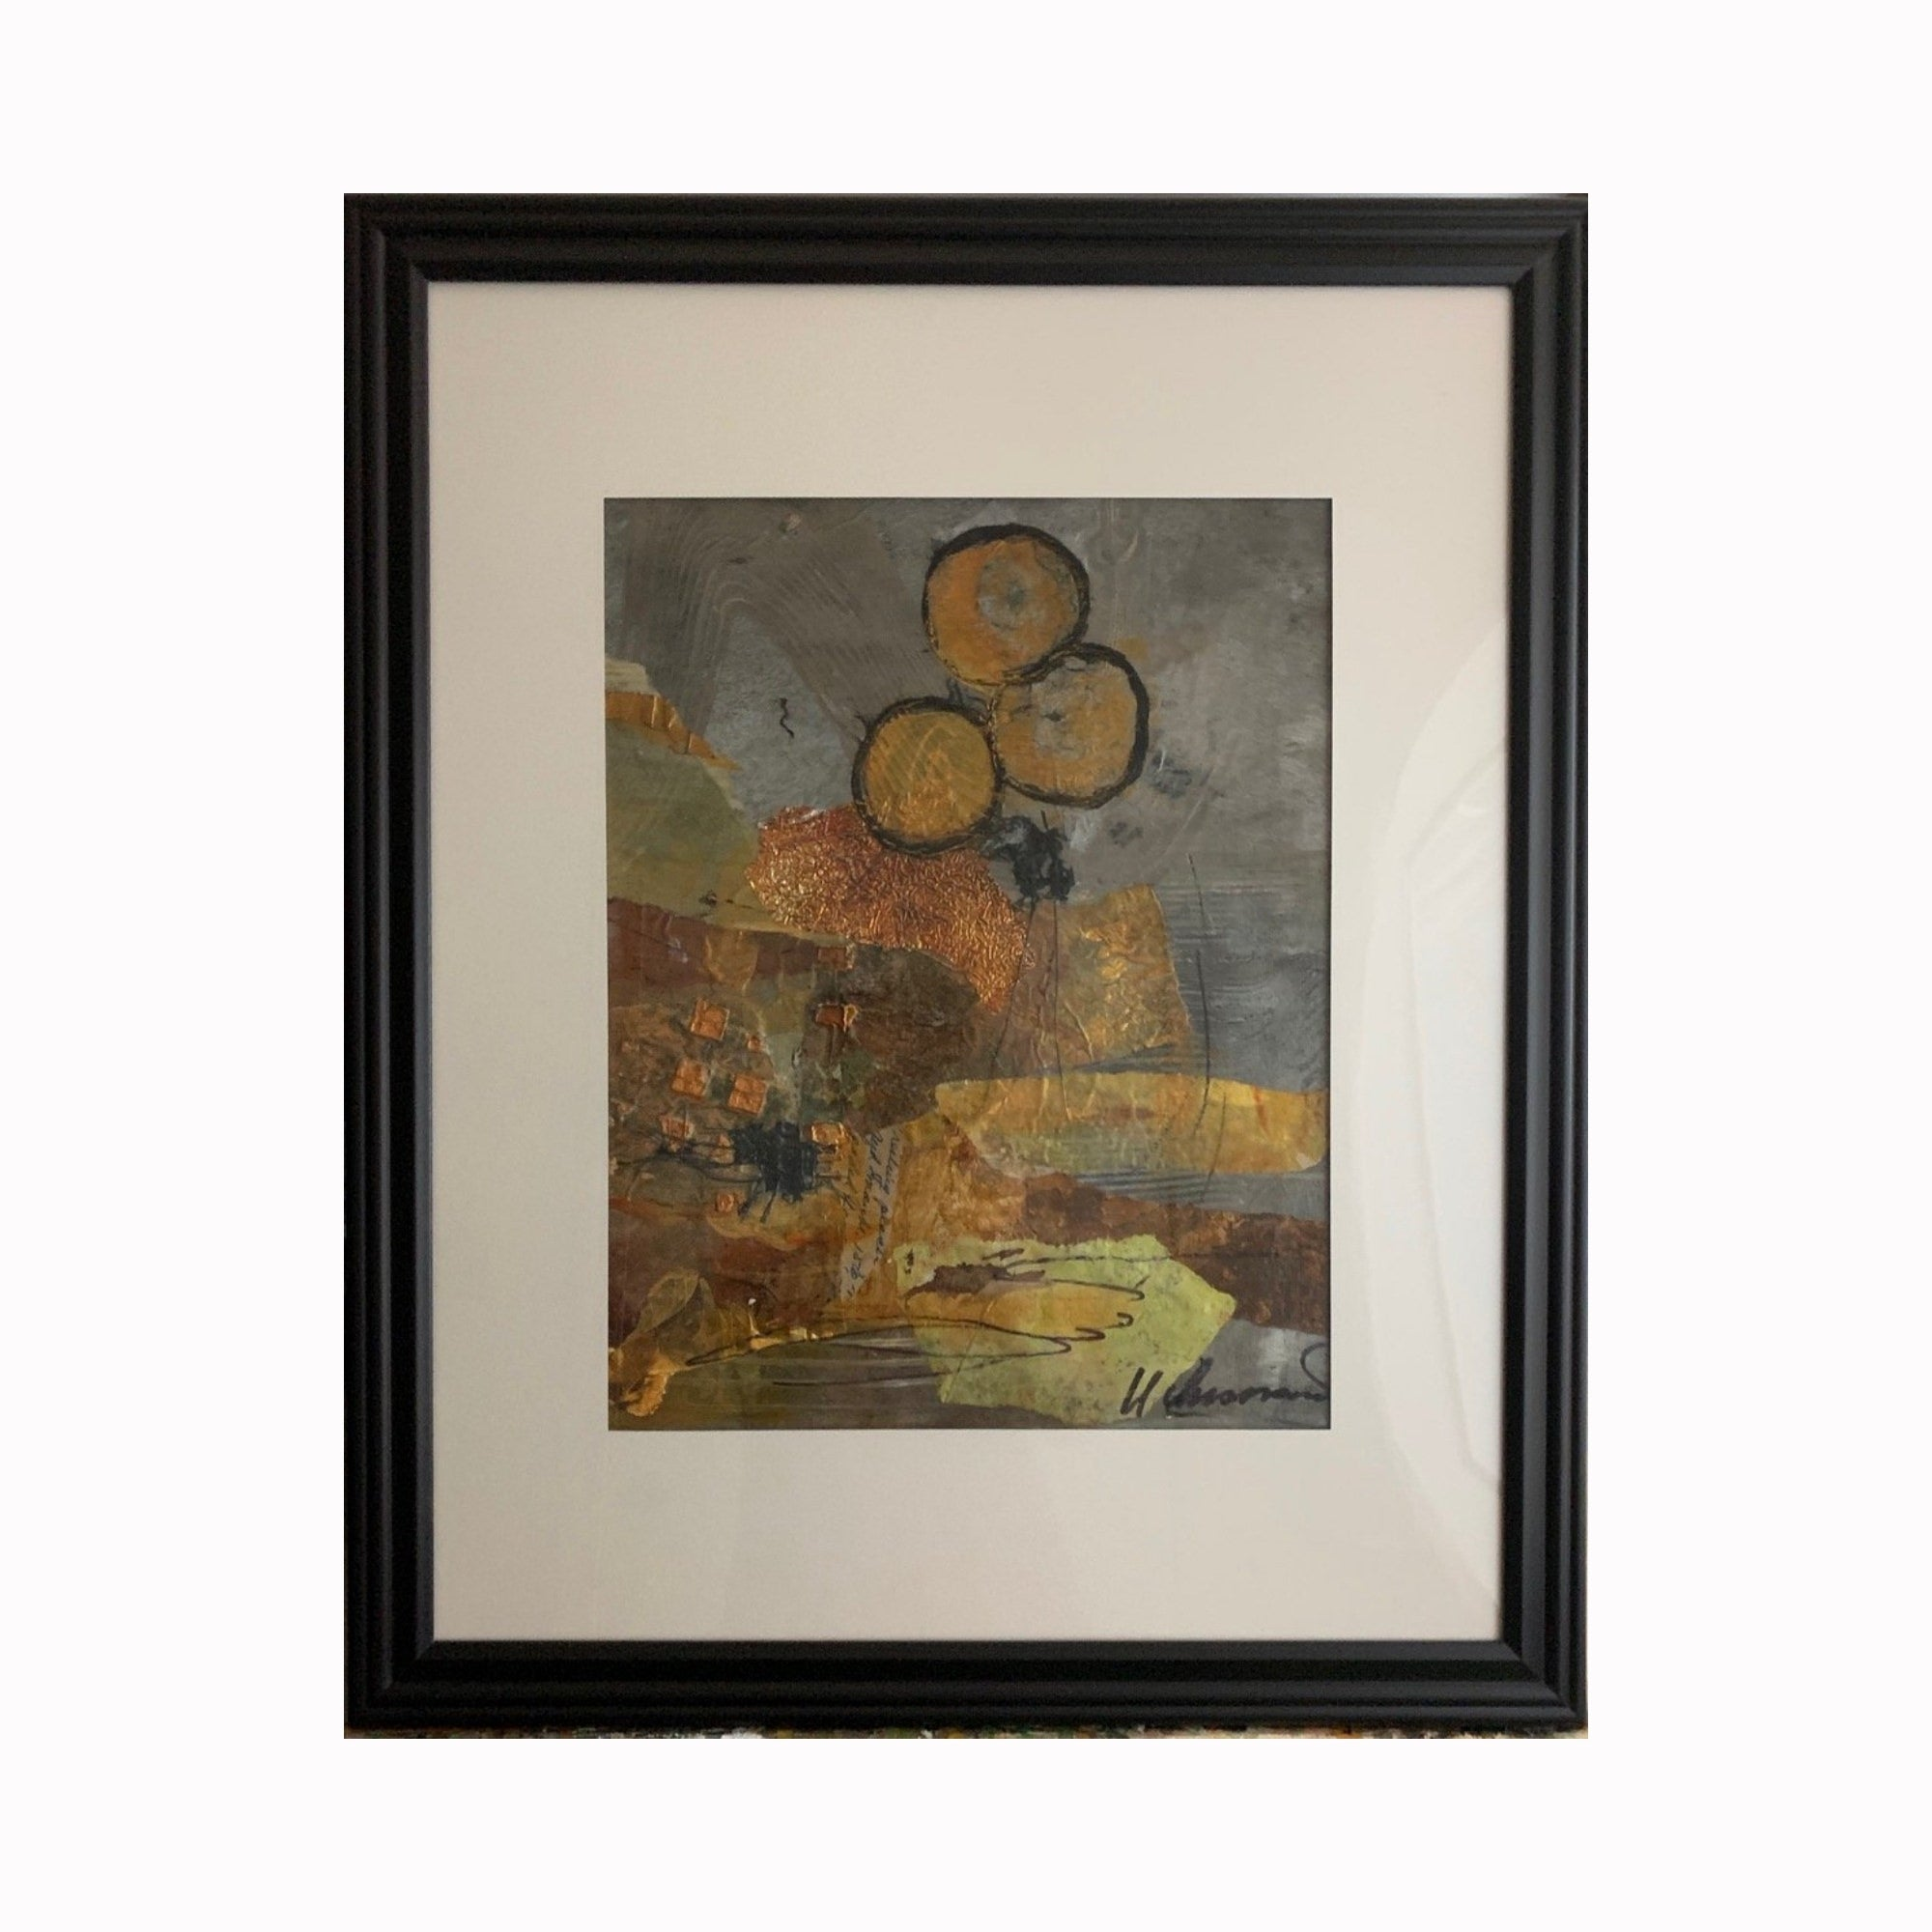 """Outlook"" is a mixed media abstract painting by Texas artist Sharon Whisnand 